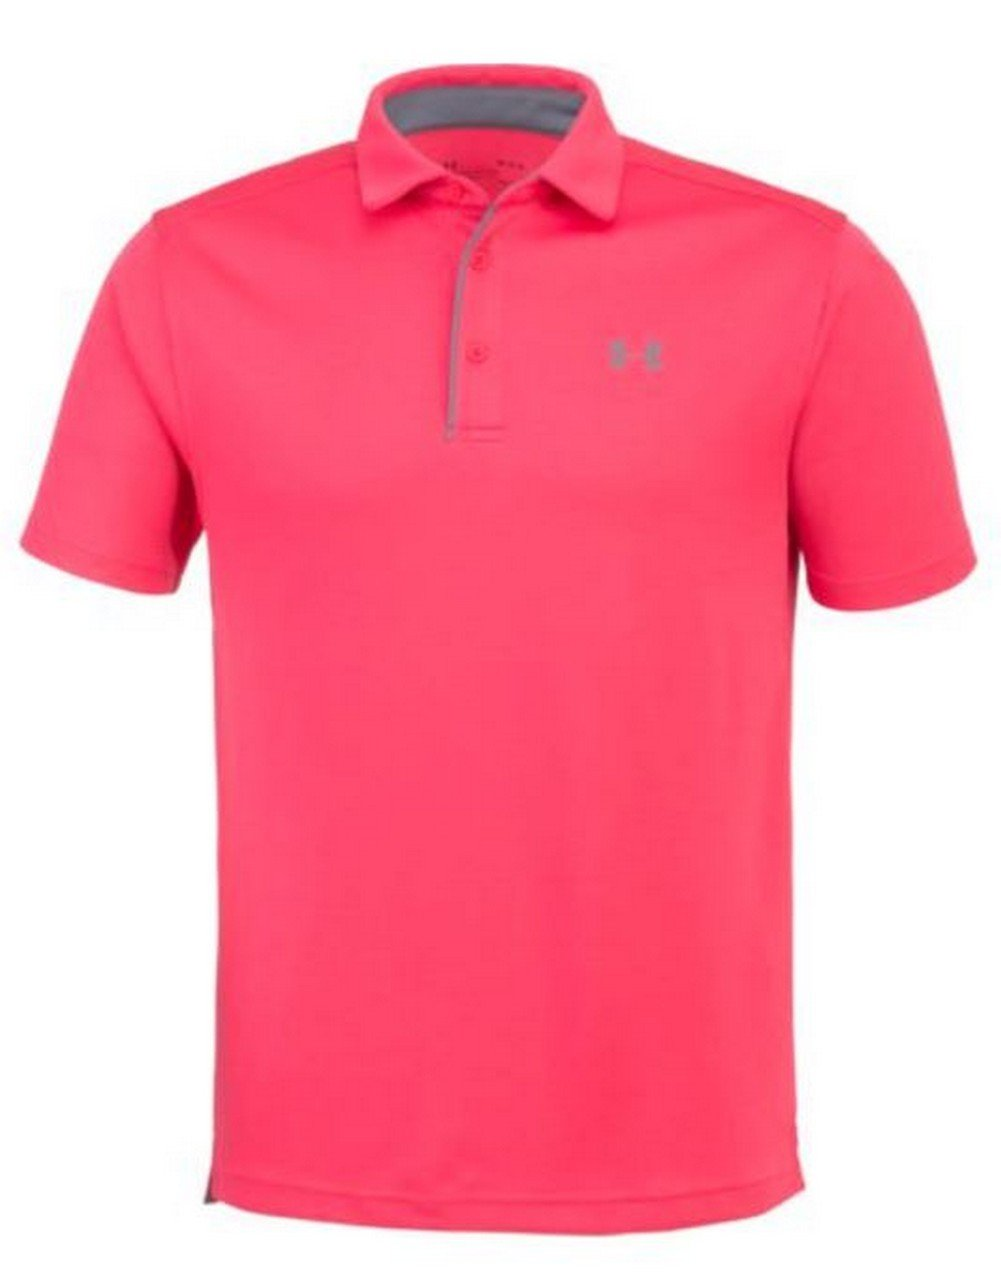 Under Armour UA Men's Tech Ribbed Golf Polo Shirt 1290140 (Pink, S)